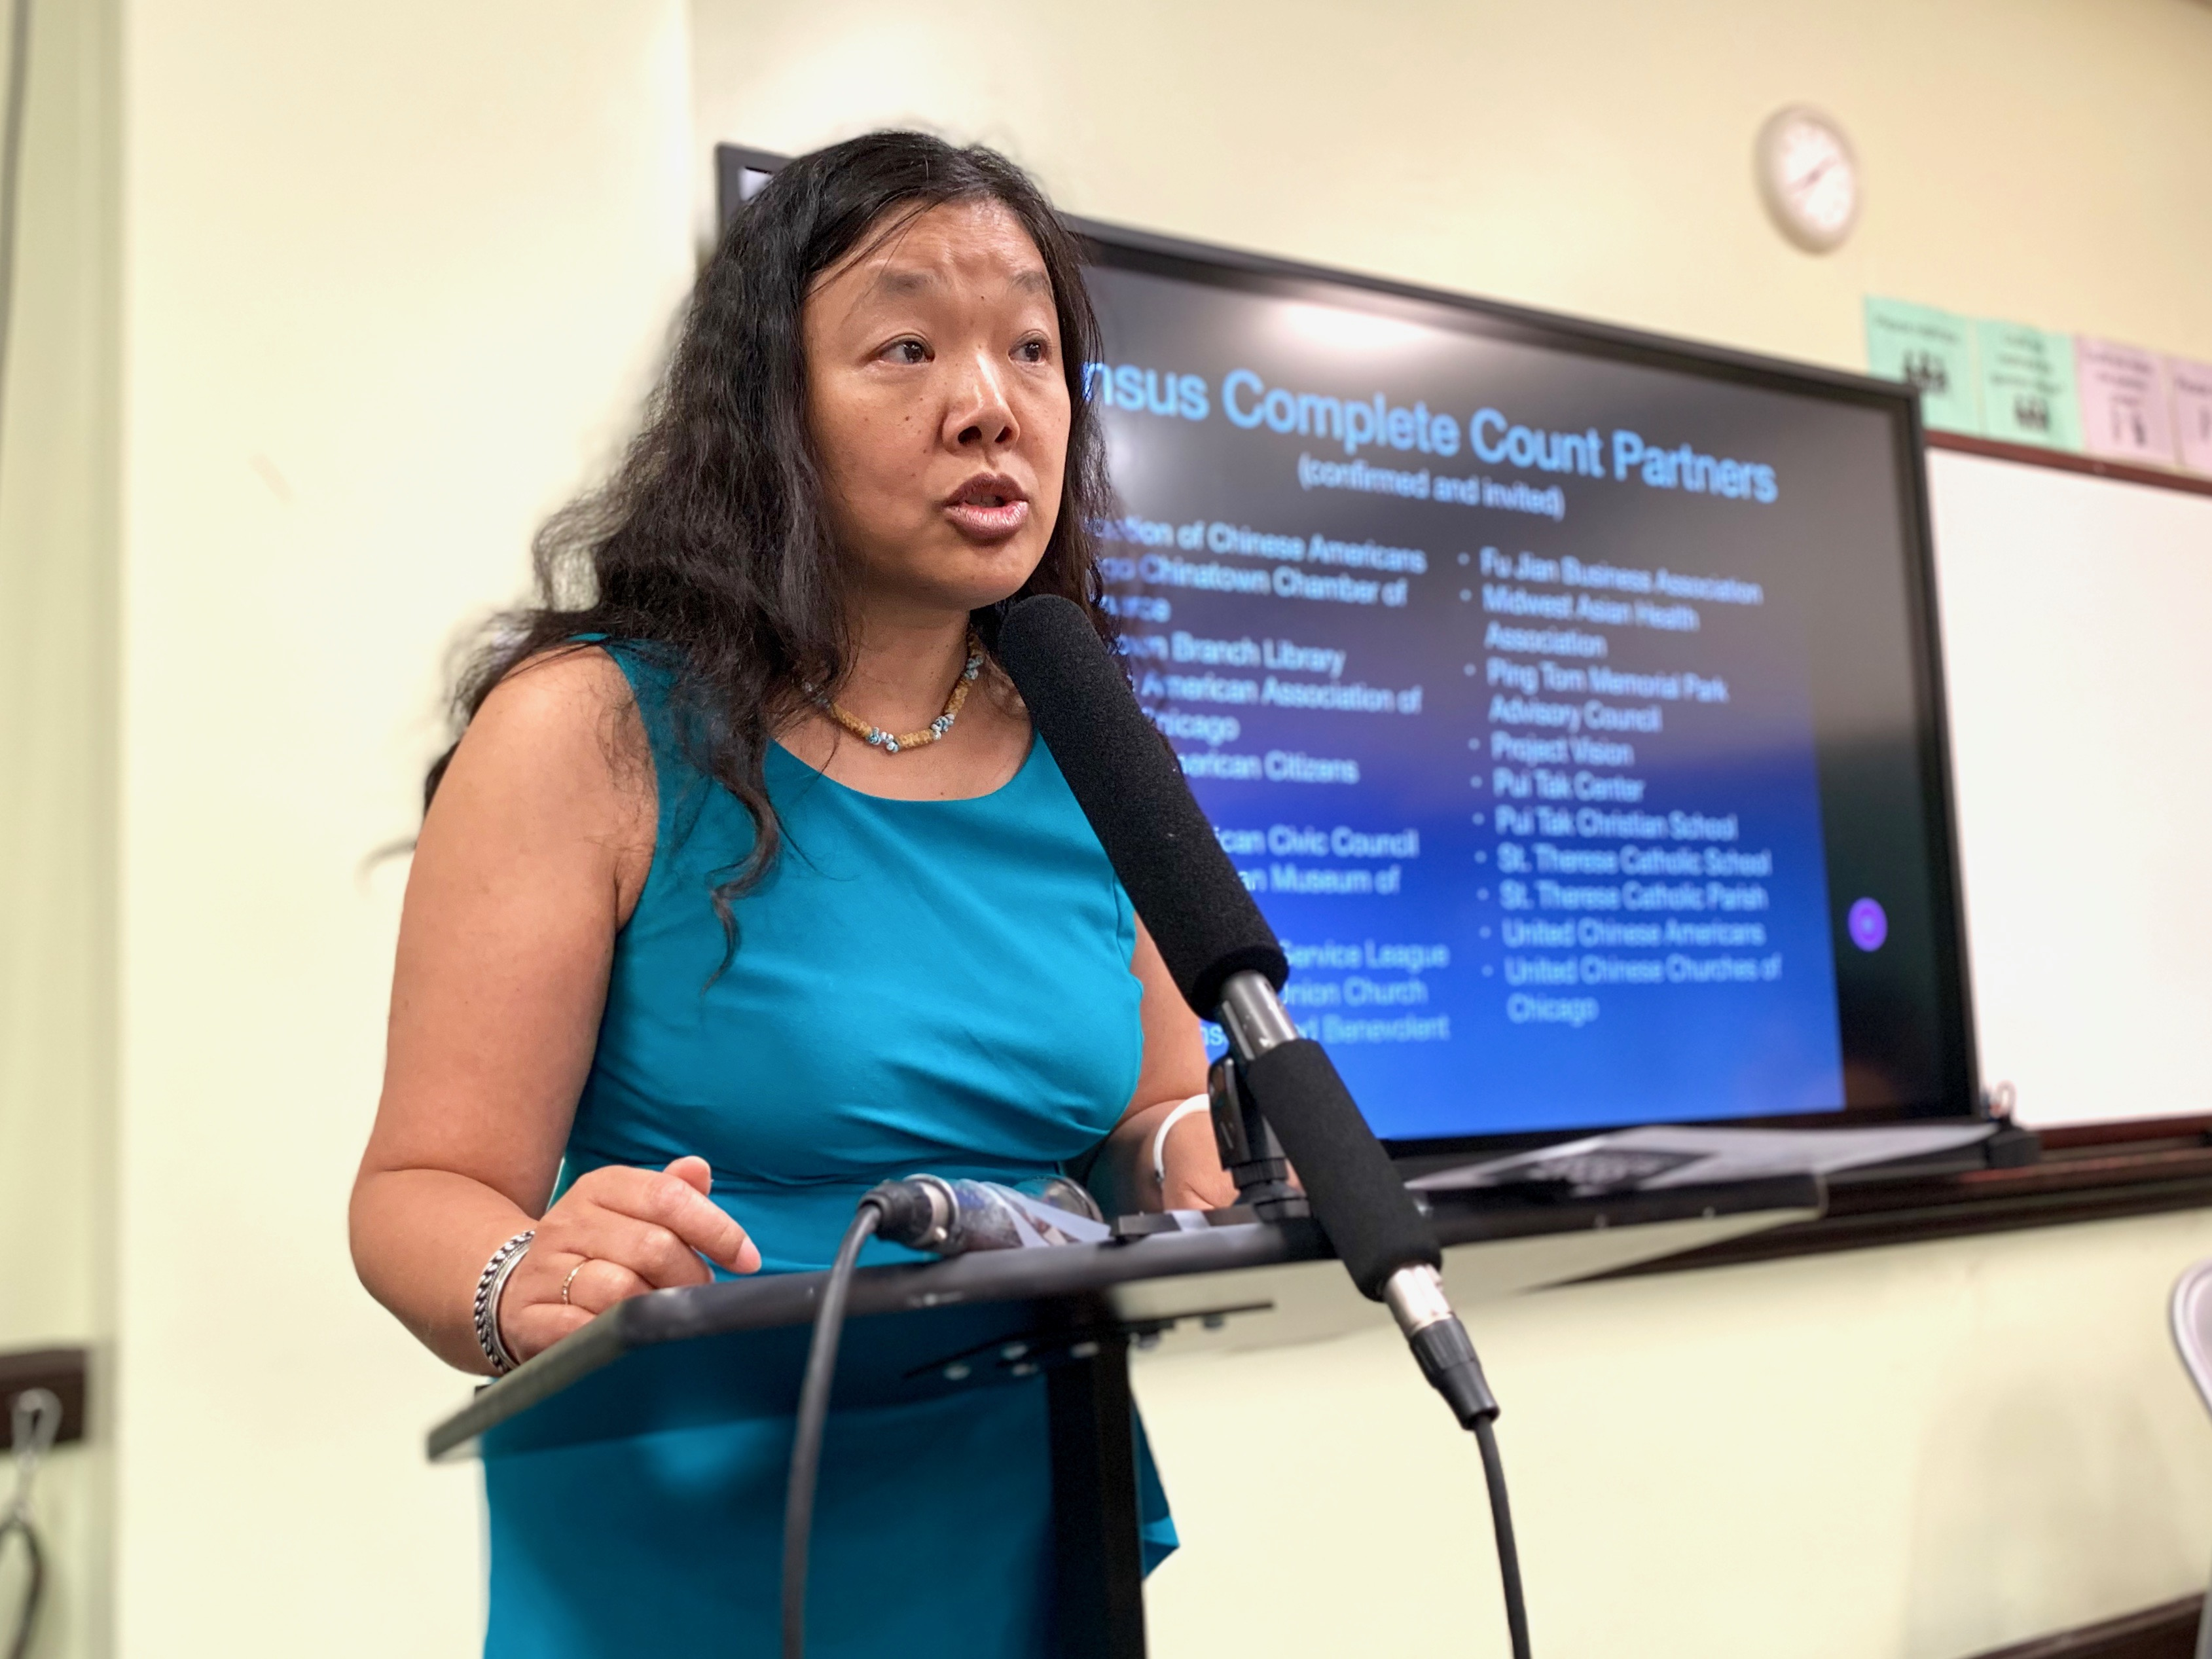 Coalition for a Better Chinese American Community Executive Director Grace Chan McKibben discusses the census outreach strategy at a news conference on July 23, 2019.